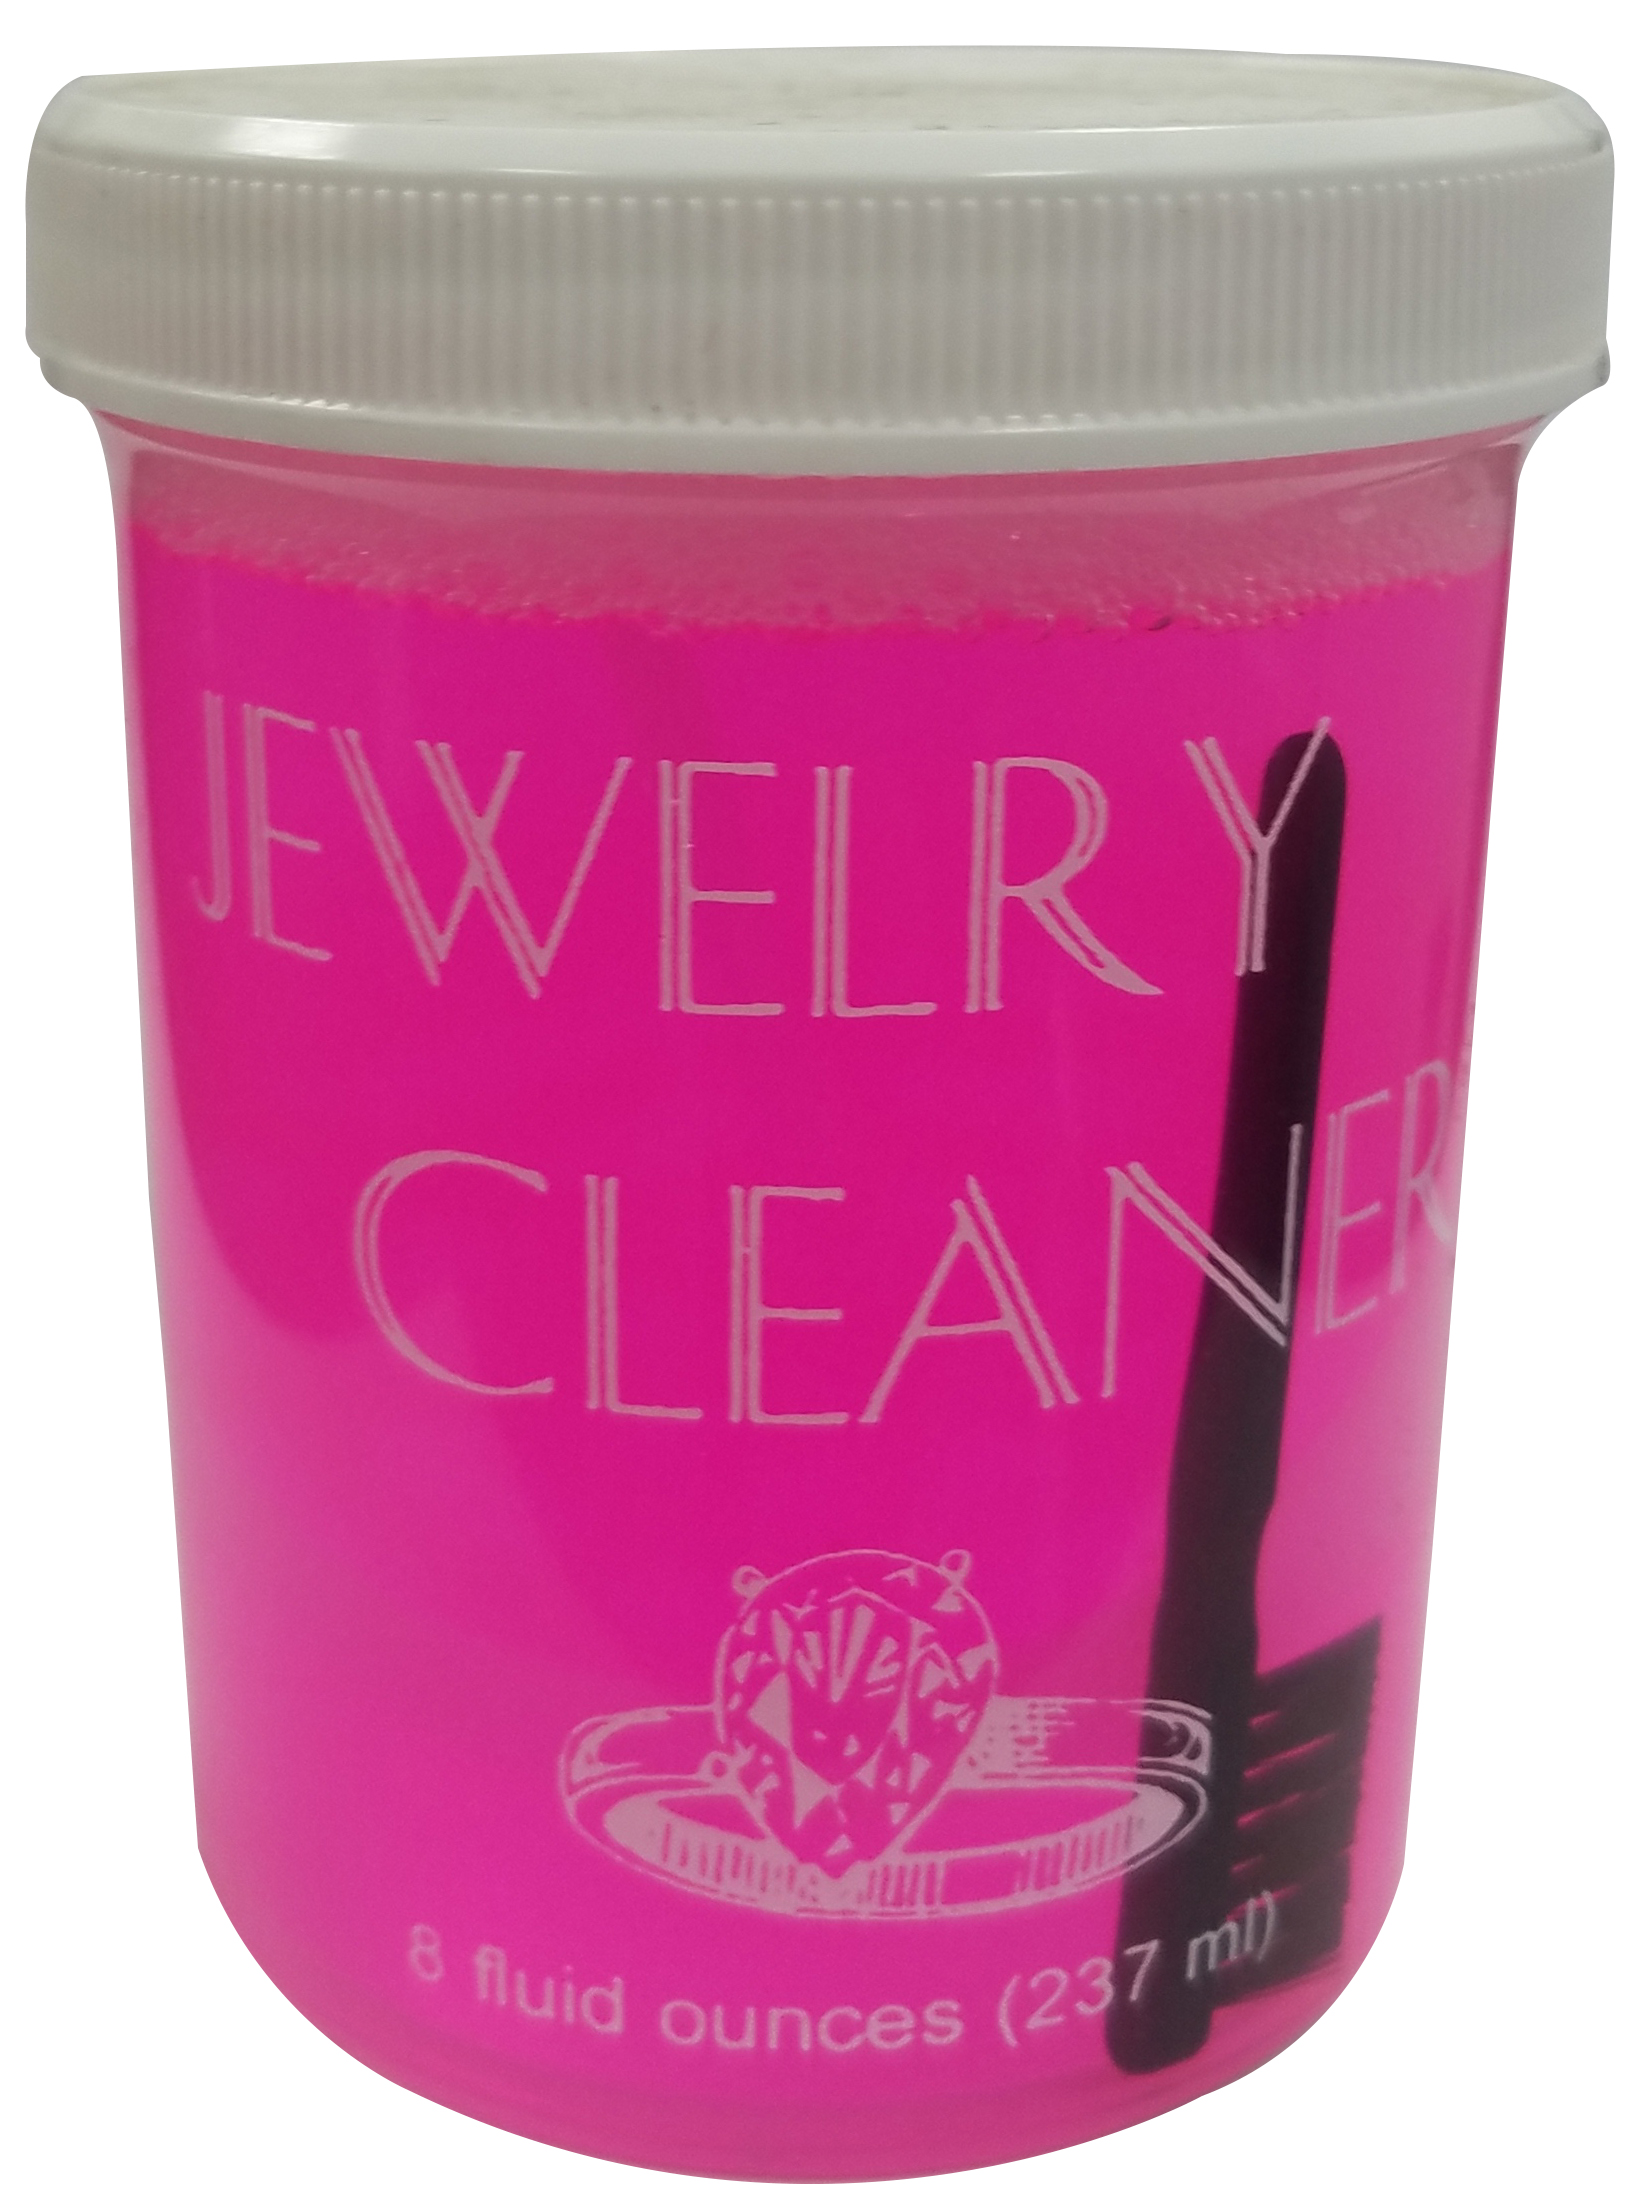 JEWELRY CLEANER/PINK, 8 ounces with basket & brush